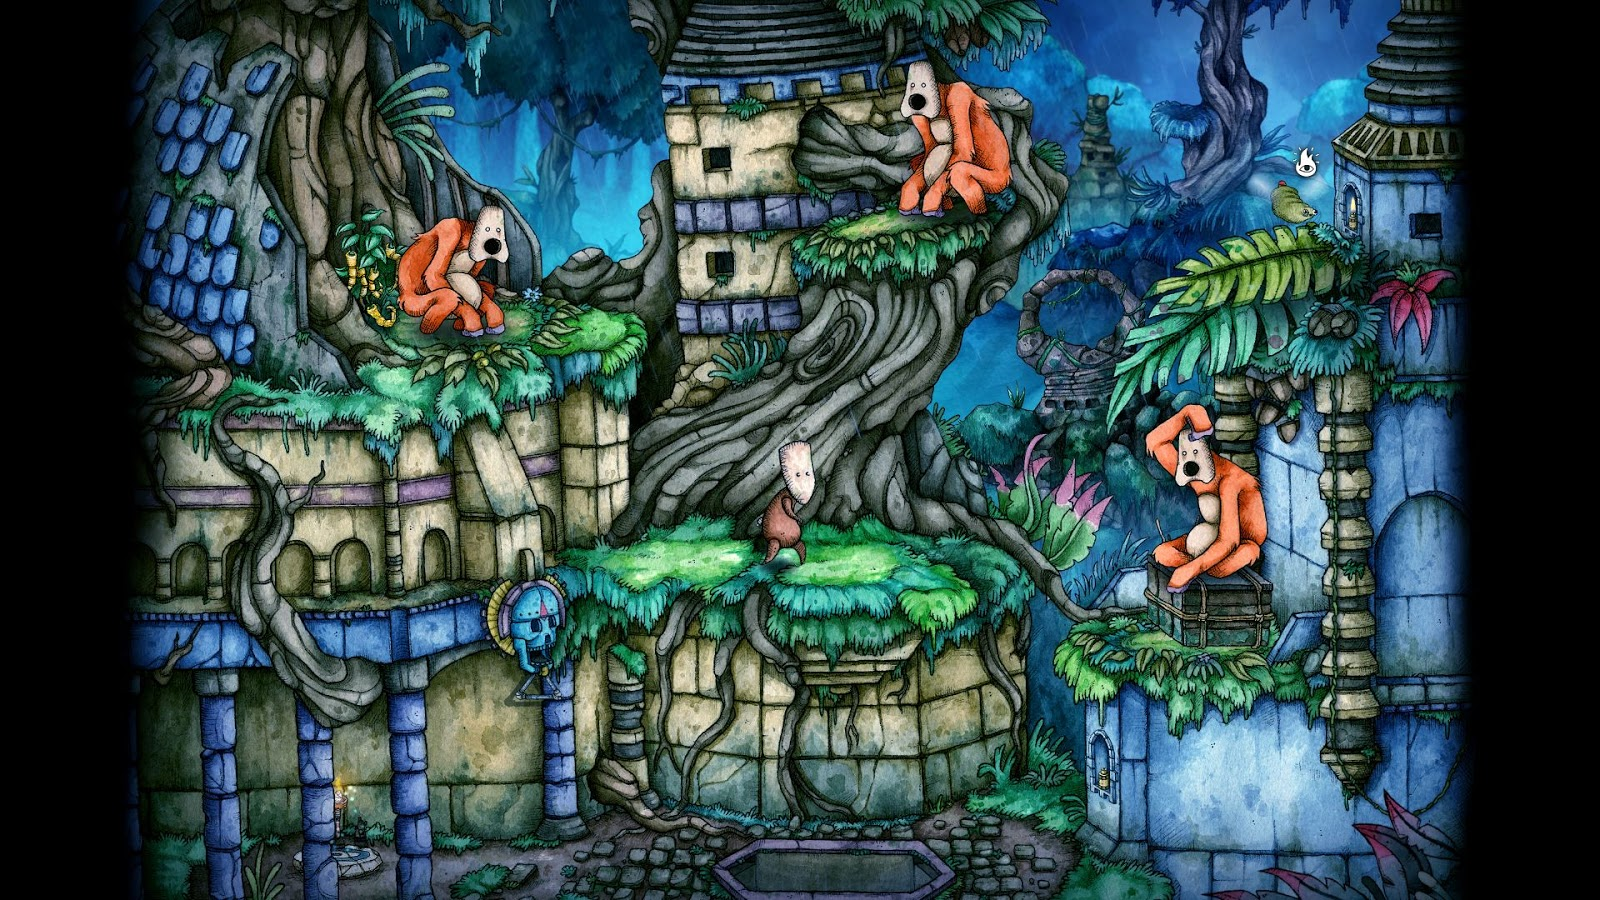 Candle PC Game Download for Free